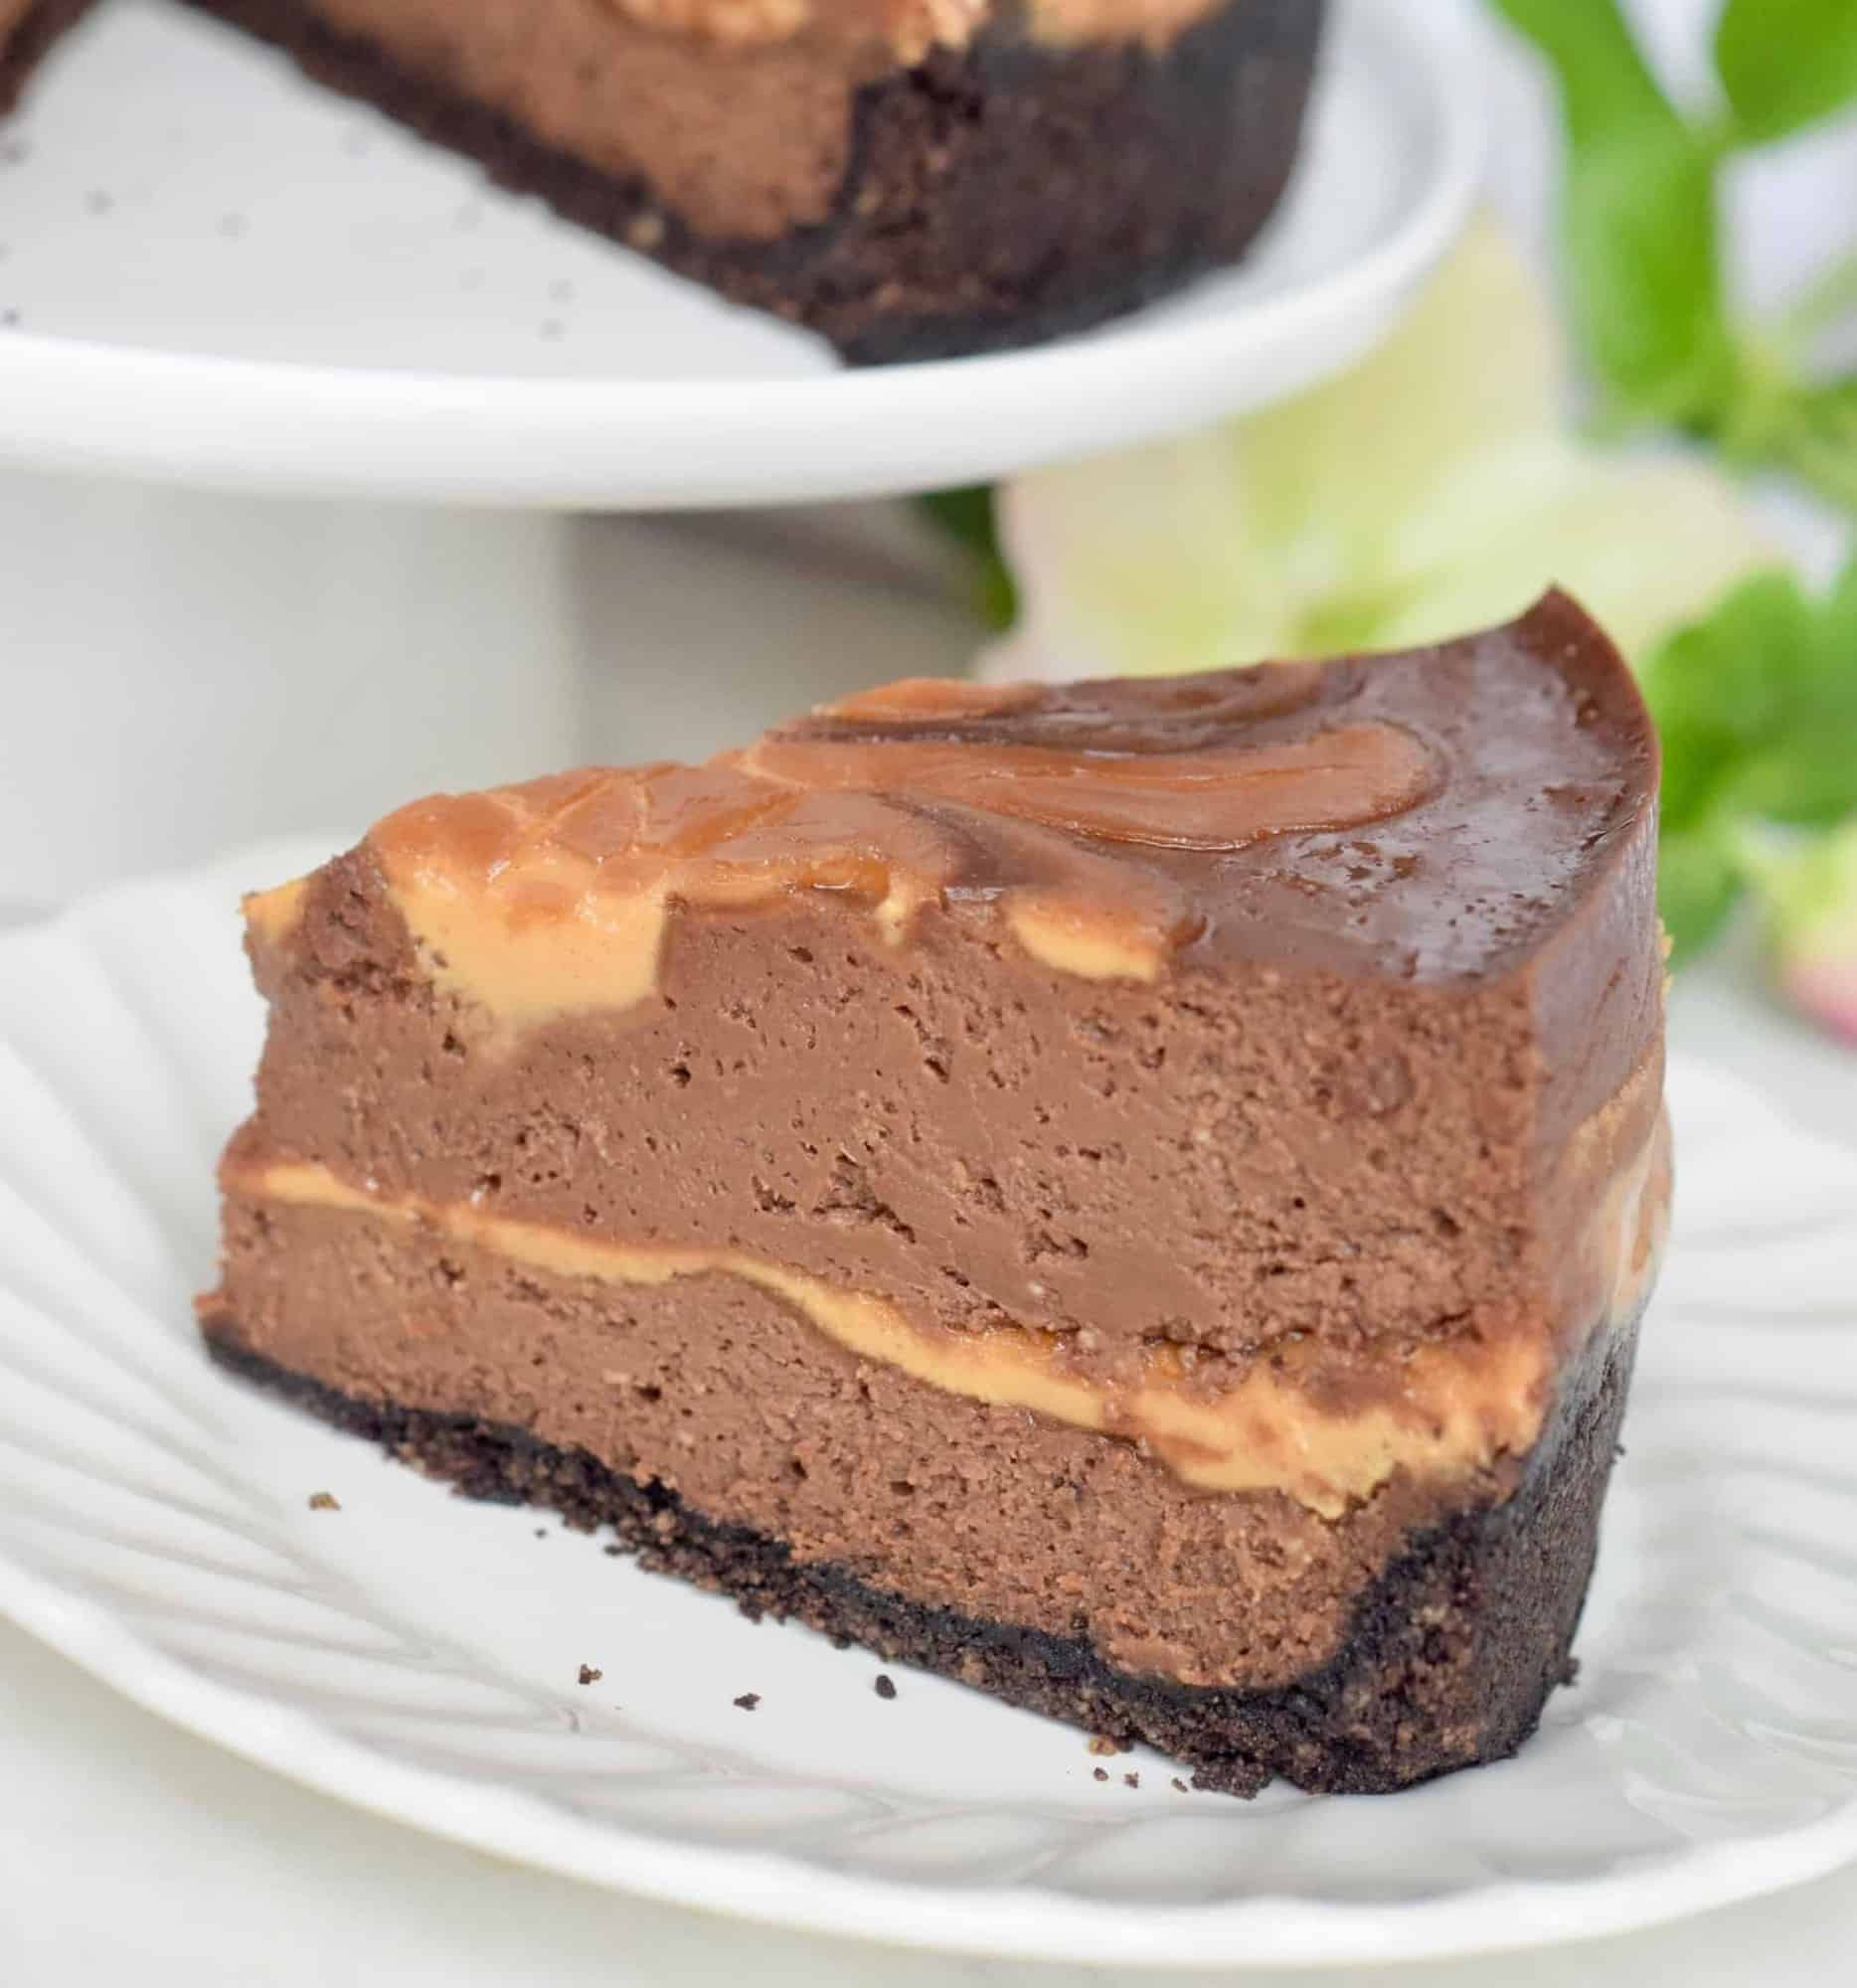 Instant Pot Chocolate-Peanut Butter Swirl Cheesecake. No cracks and super creamy!